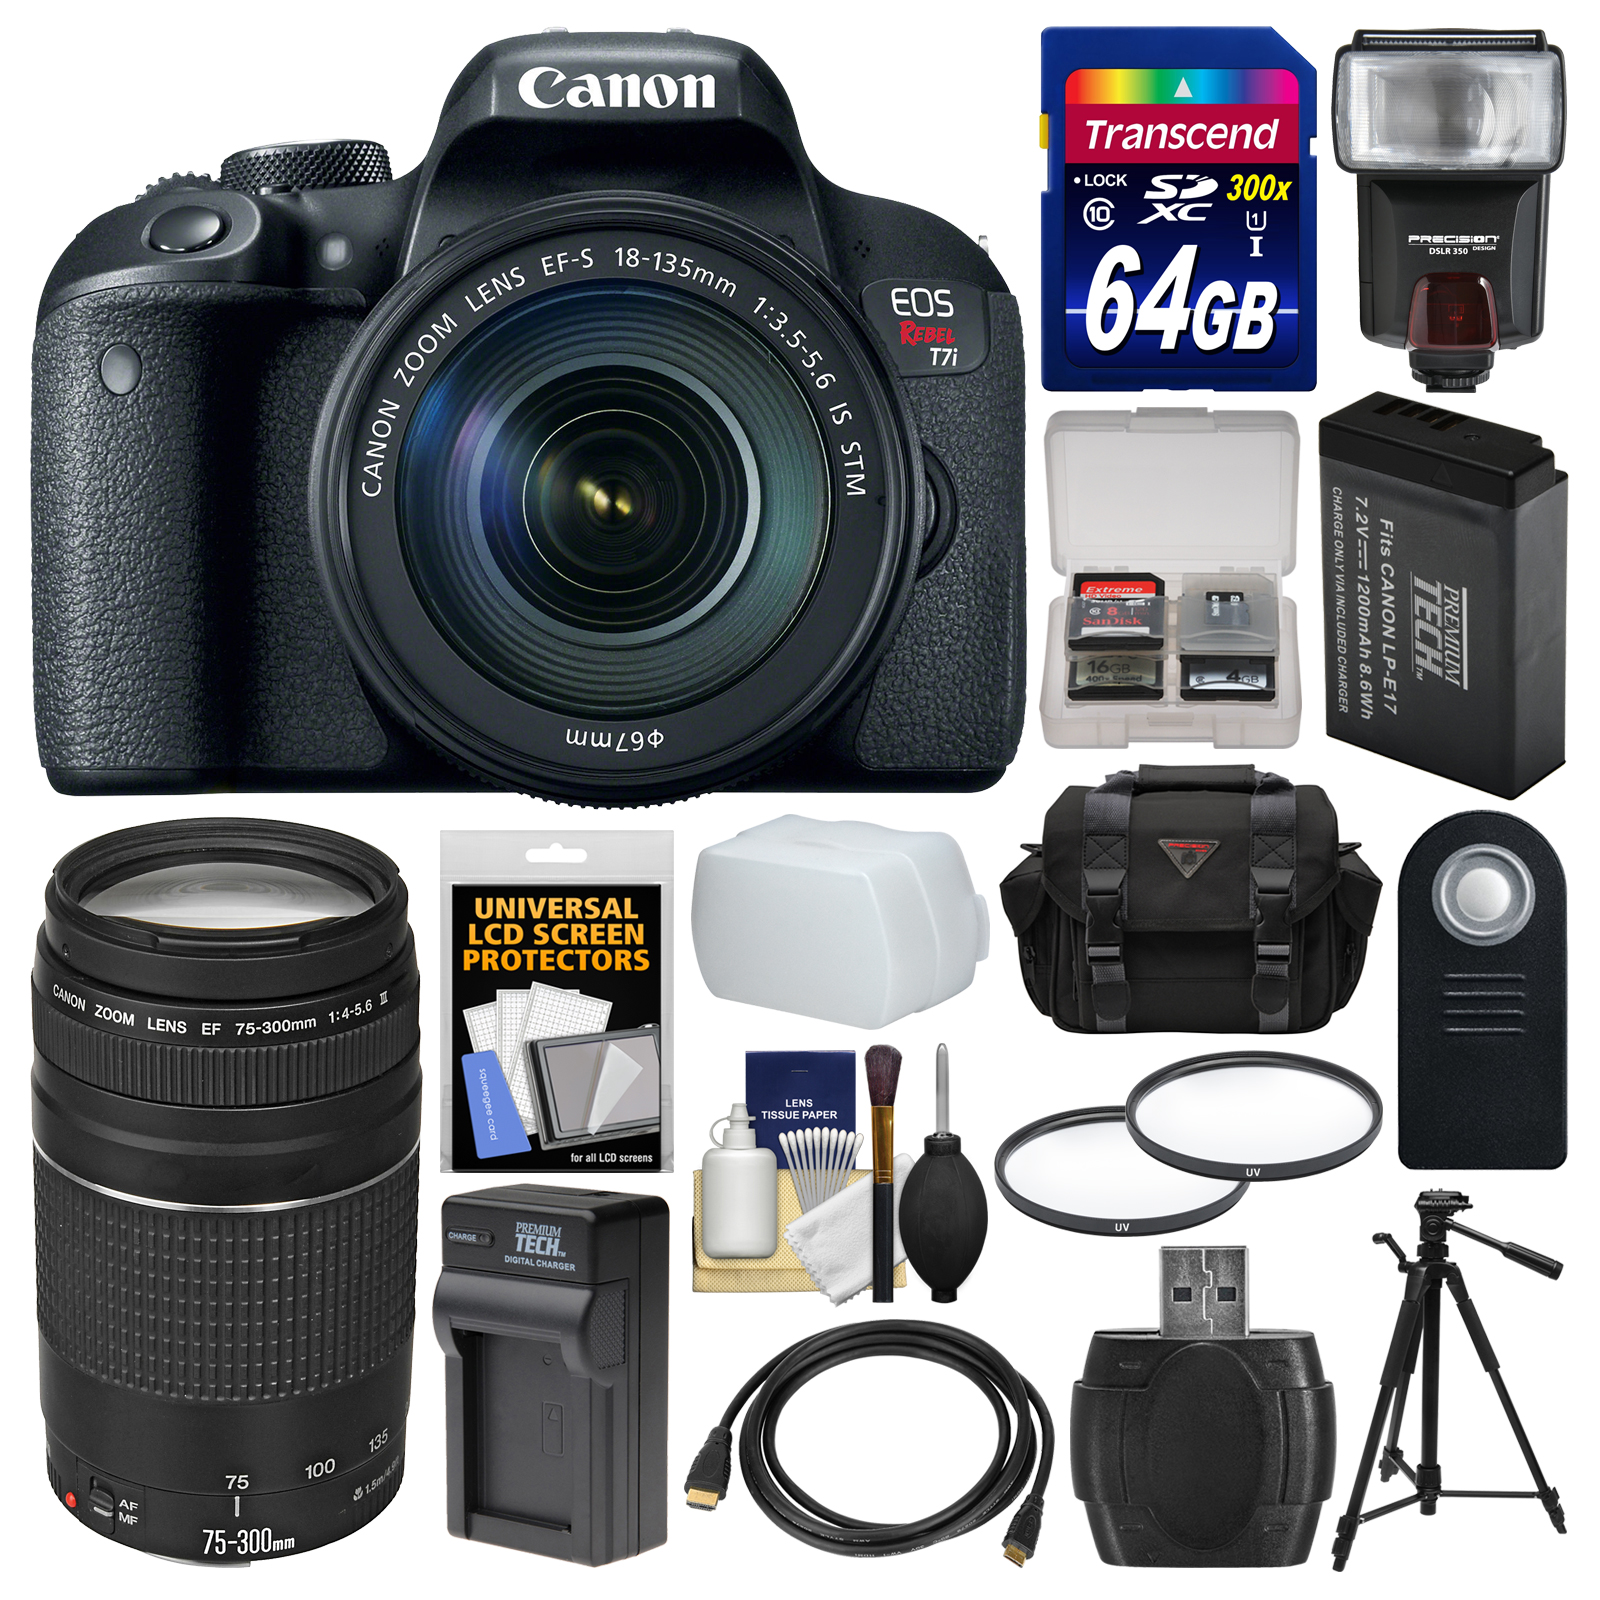 Canon EOS Rebel T7i Digital SLR Camera & EF-S 18-135mm IS STM + 75-300mm Lens + 64GB Card + Case + Flash + Battery &... by Canon